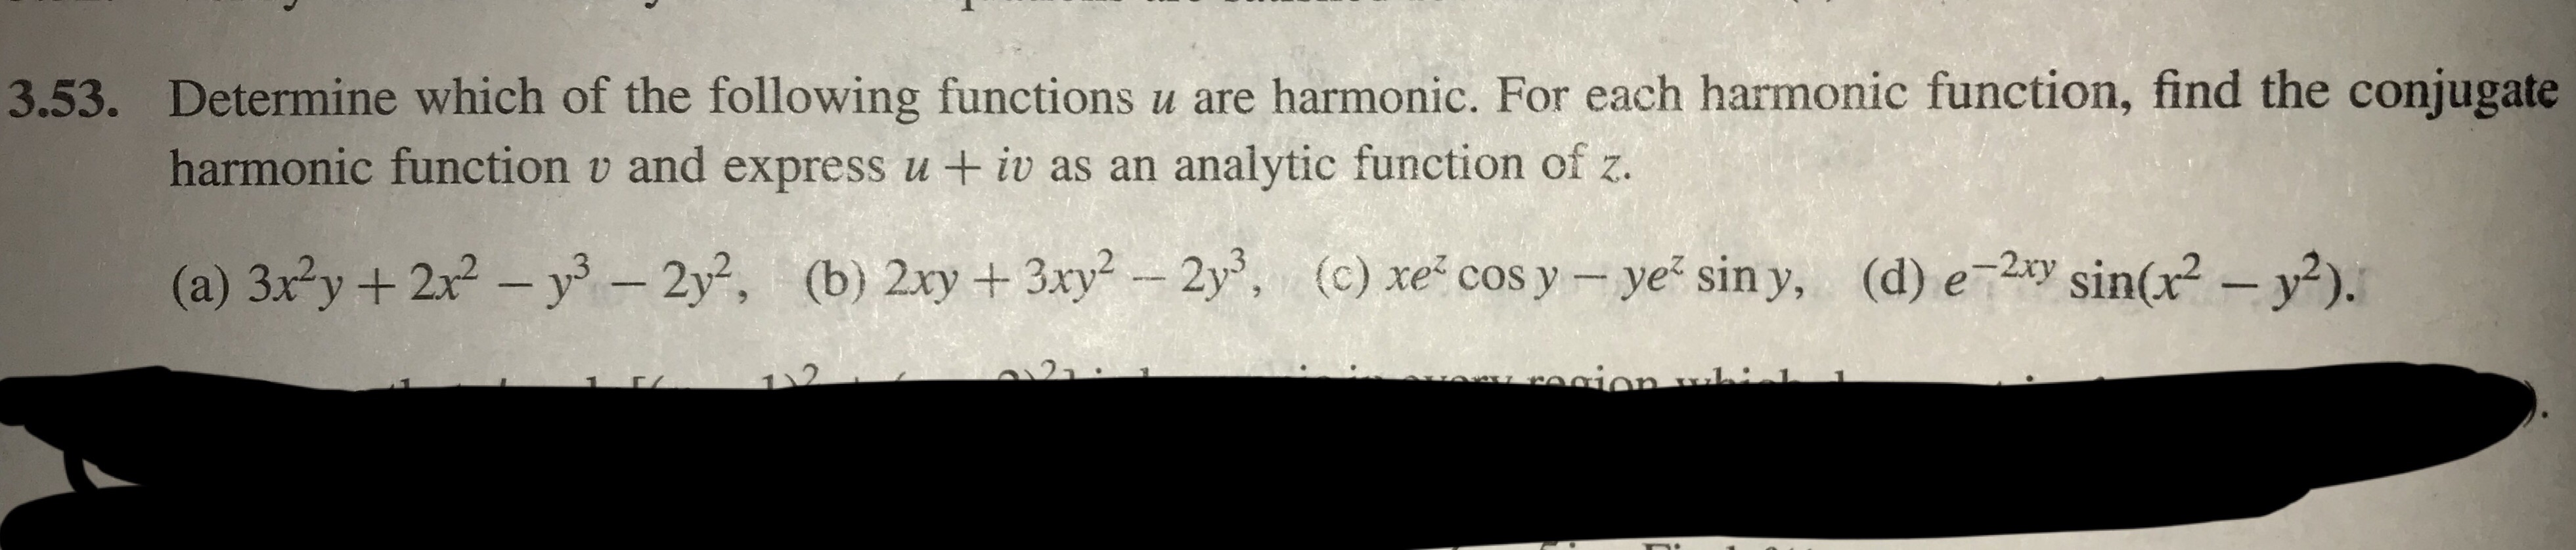 Determine which of the following functions u are harmonic. For each harmonic function, find the conjugate harmonic function v and express u +iv as an analytic function of z. 3.53. (b) 2xy + 3xy2-2y, (a) 3x2y + 2x2-уз-2y2, (d) e_2xy Sin(x2-y2). (c) xe-cosy-yez siny,